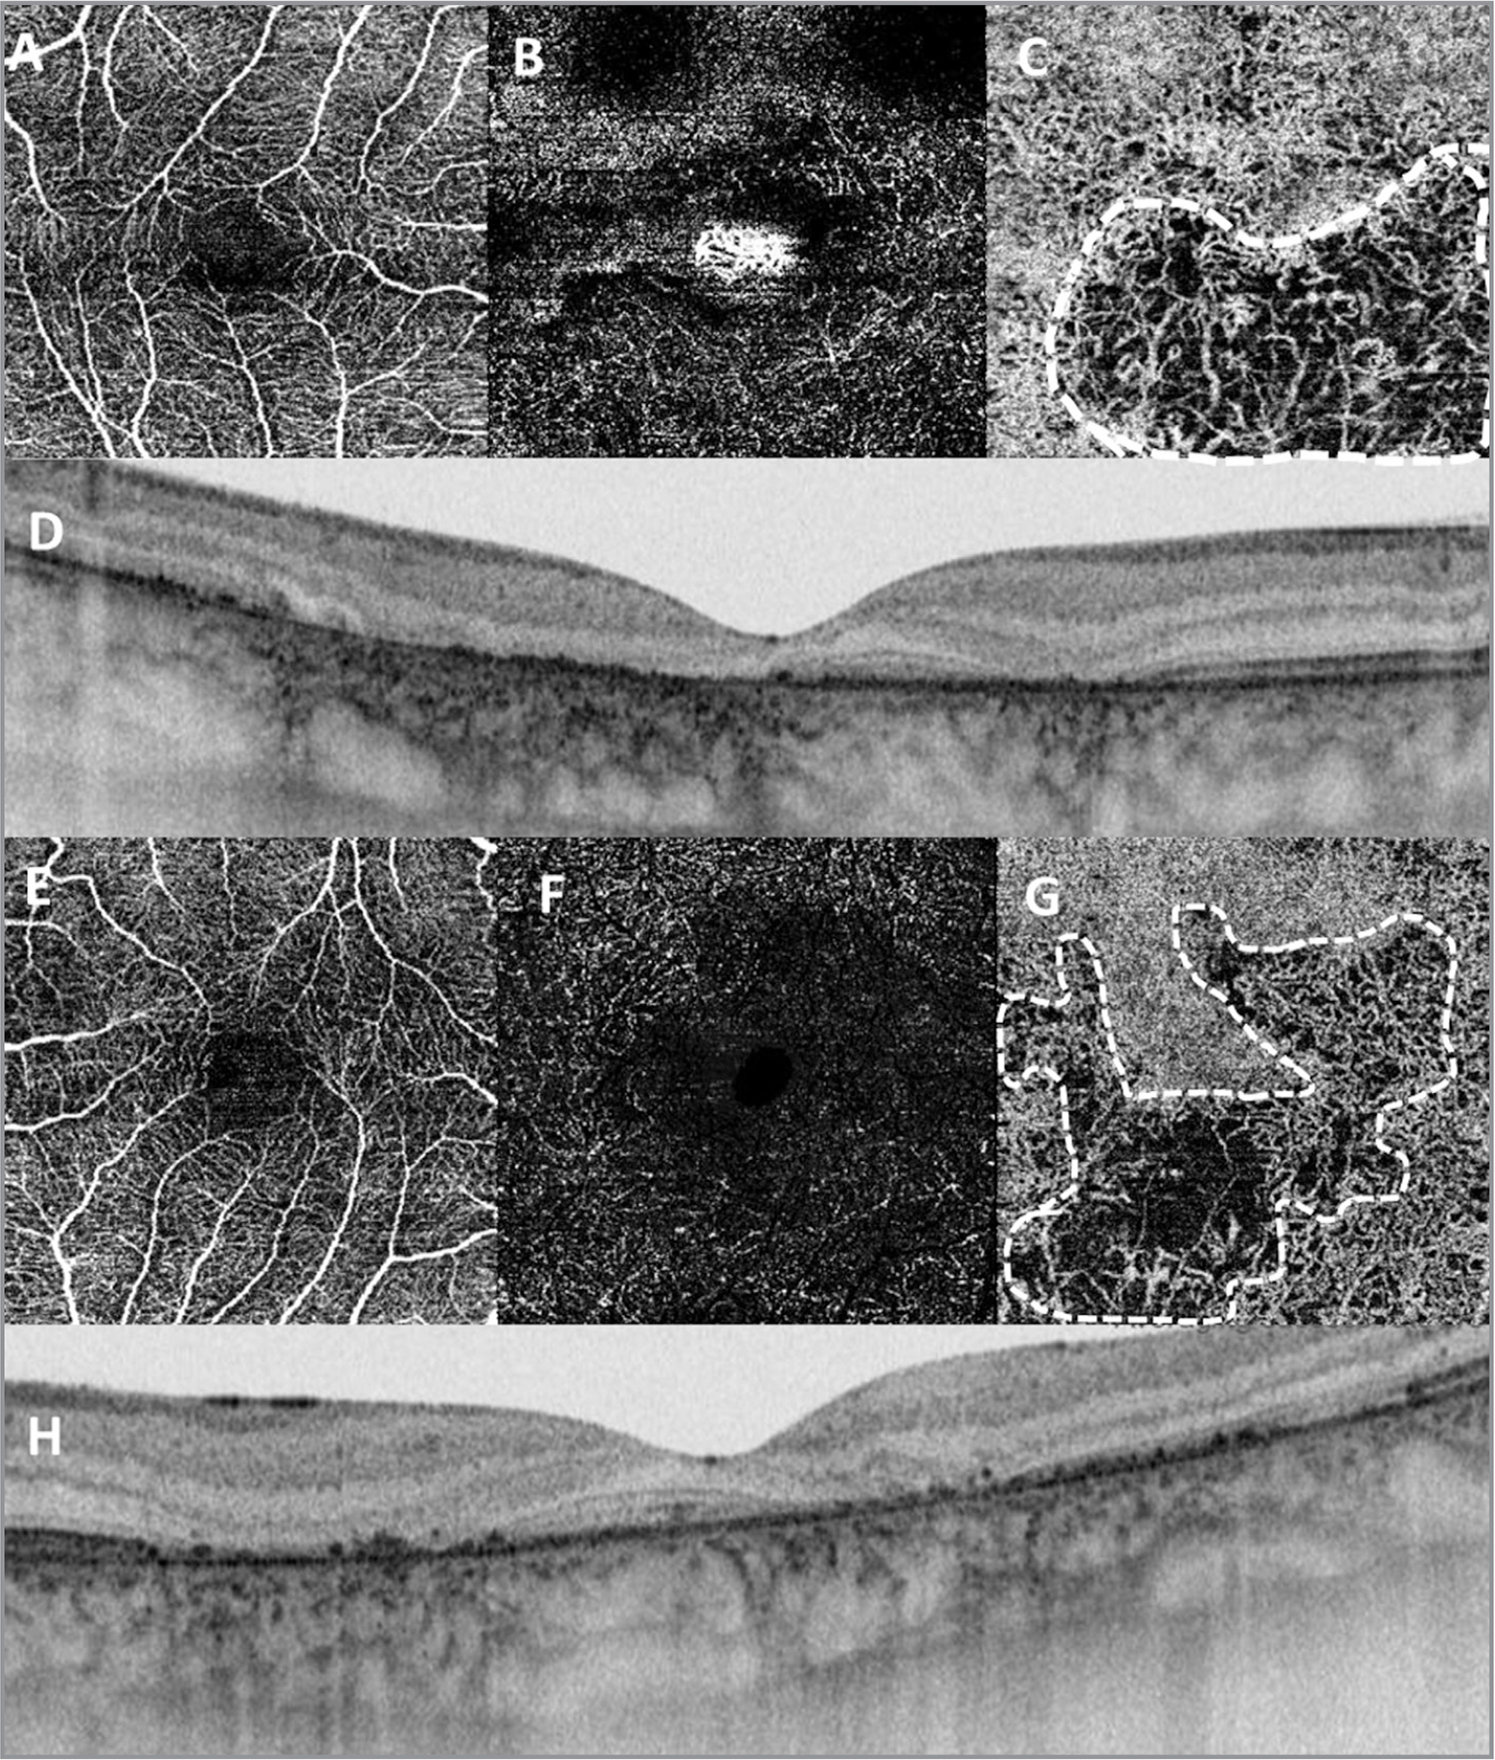 Optical coherence tomography angiography (OCTA) of patient No. 1. Swept-source OCTA. (A) Normal superficial plexus. (B) Deep retinal vascular plexus with some voids of vessels. (C) Choriocapillaris with large area of reduced perfusion (white dotted area).